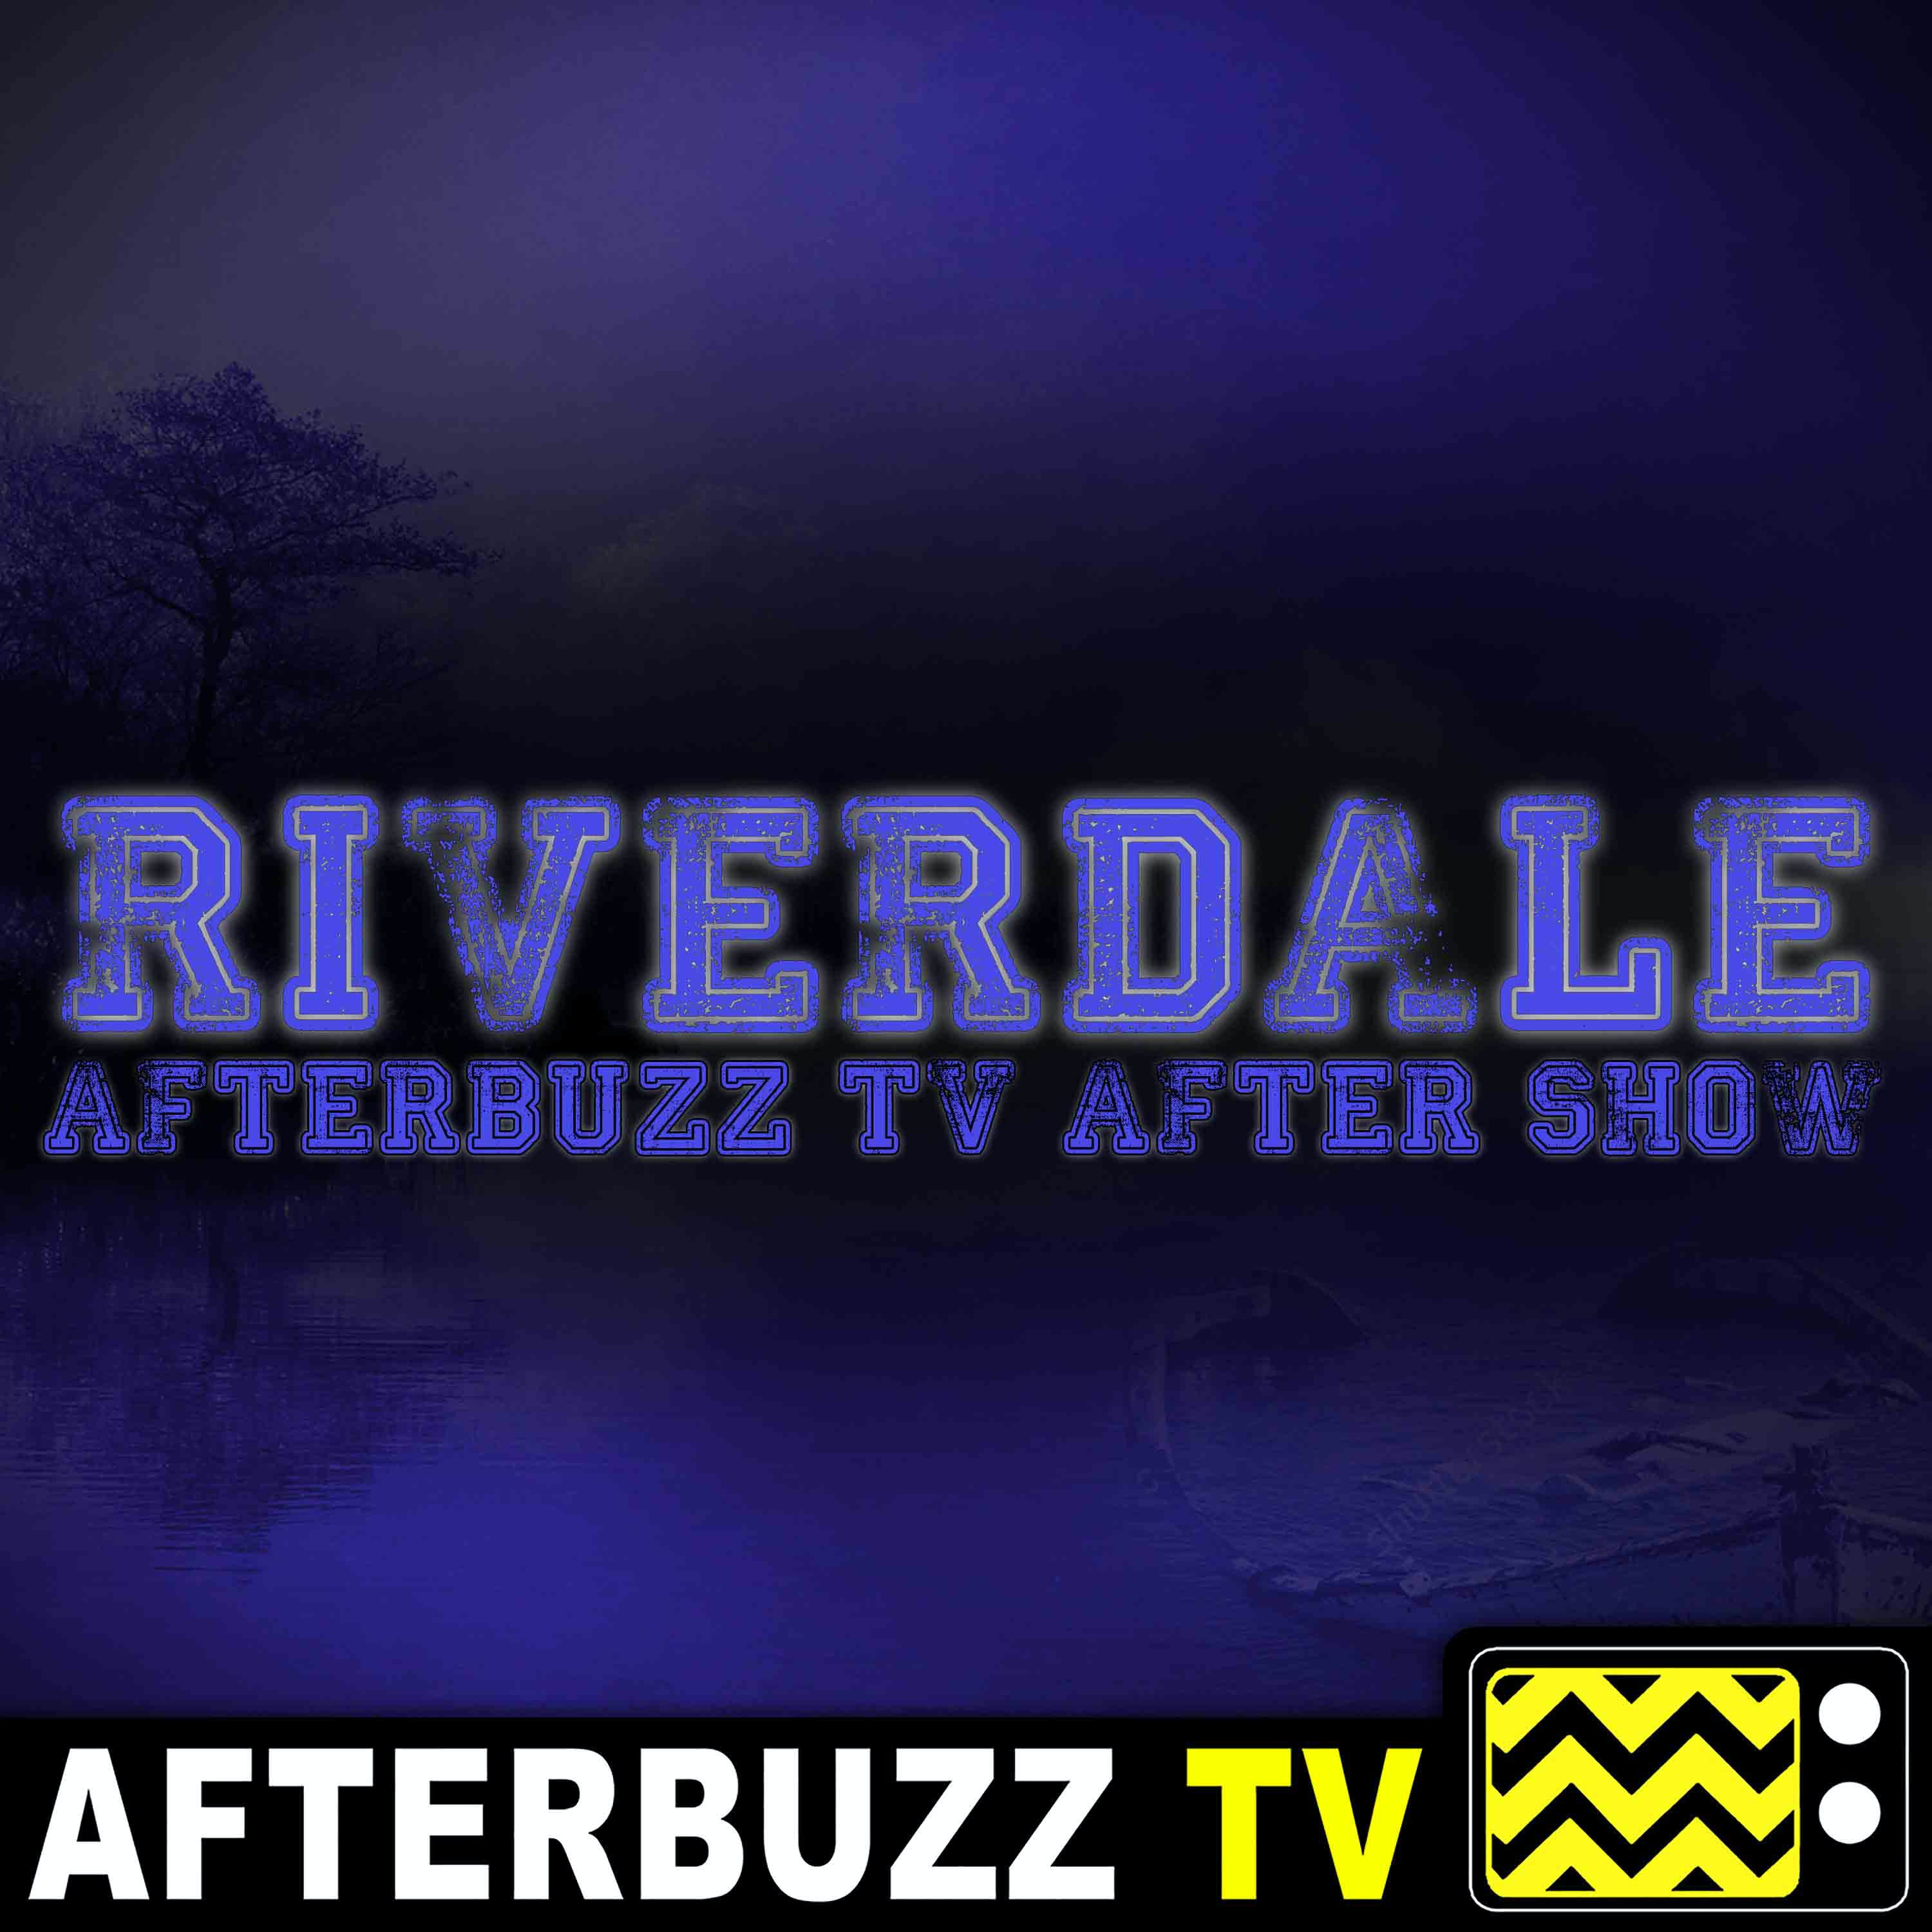 Riverdale S4 E17 Recap & After Show: Kevin and the Angry Inch